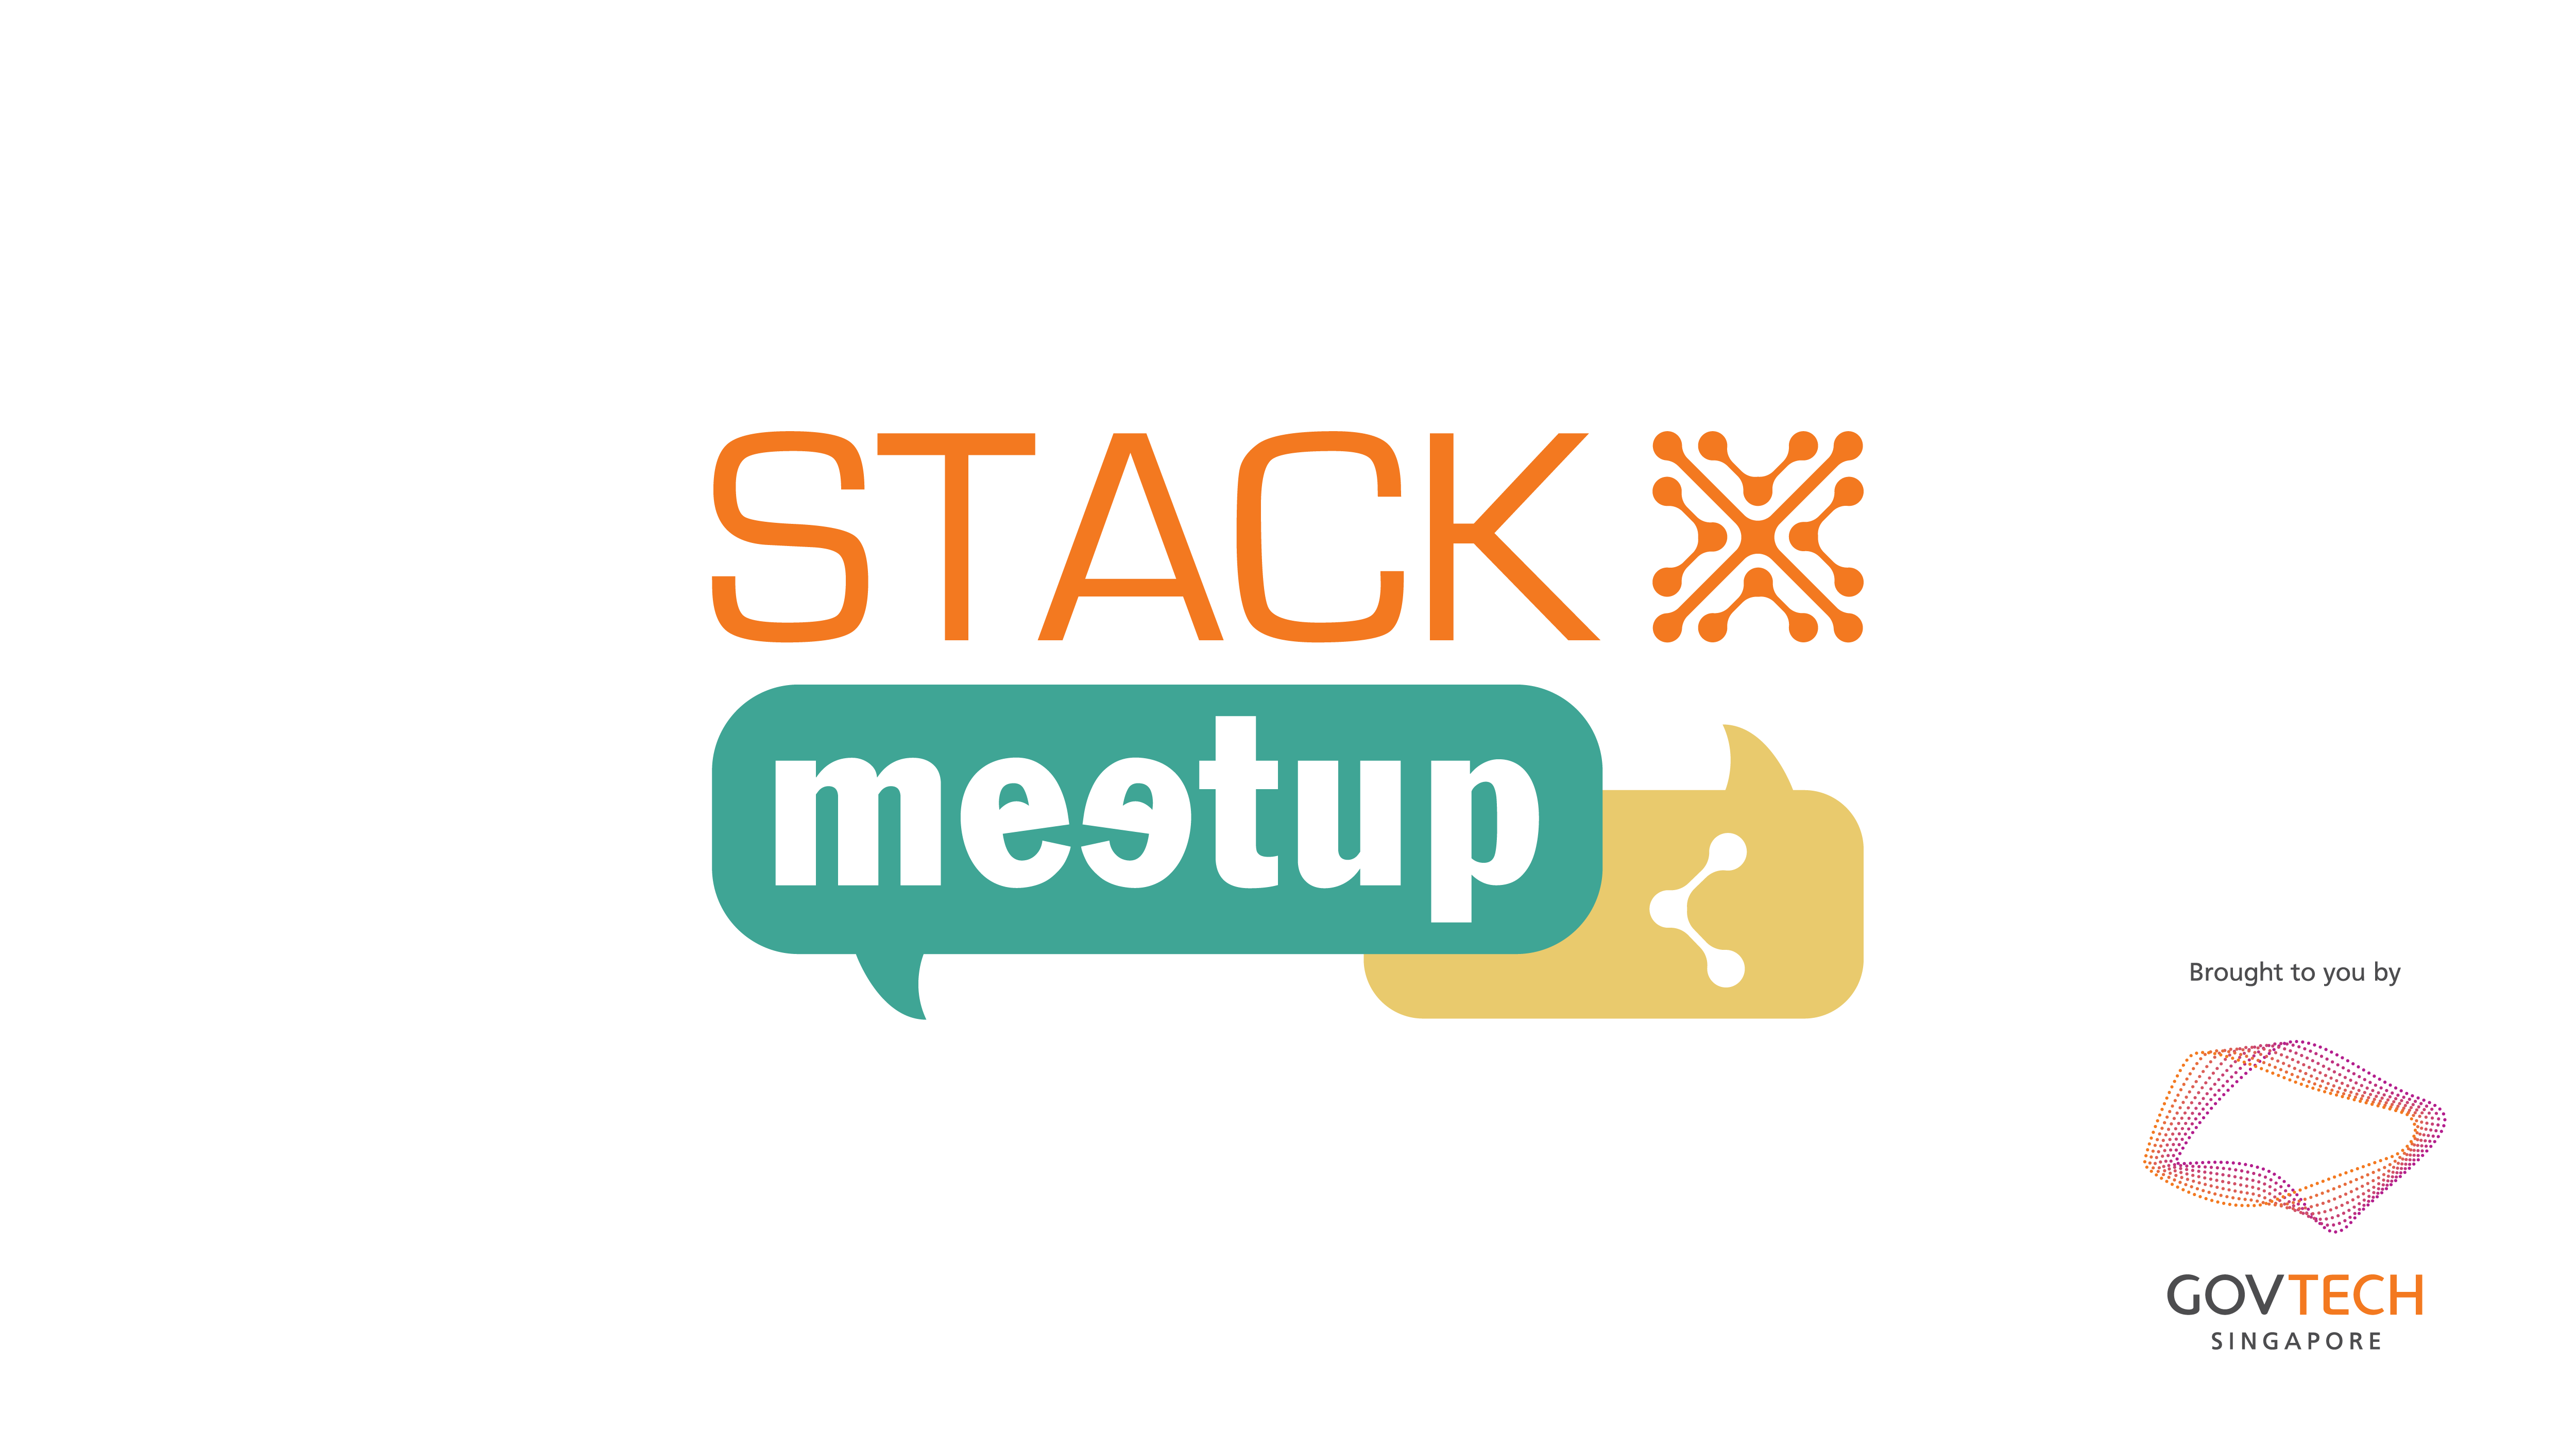 STACK-X by GovTech Singapore